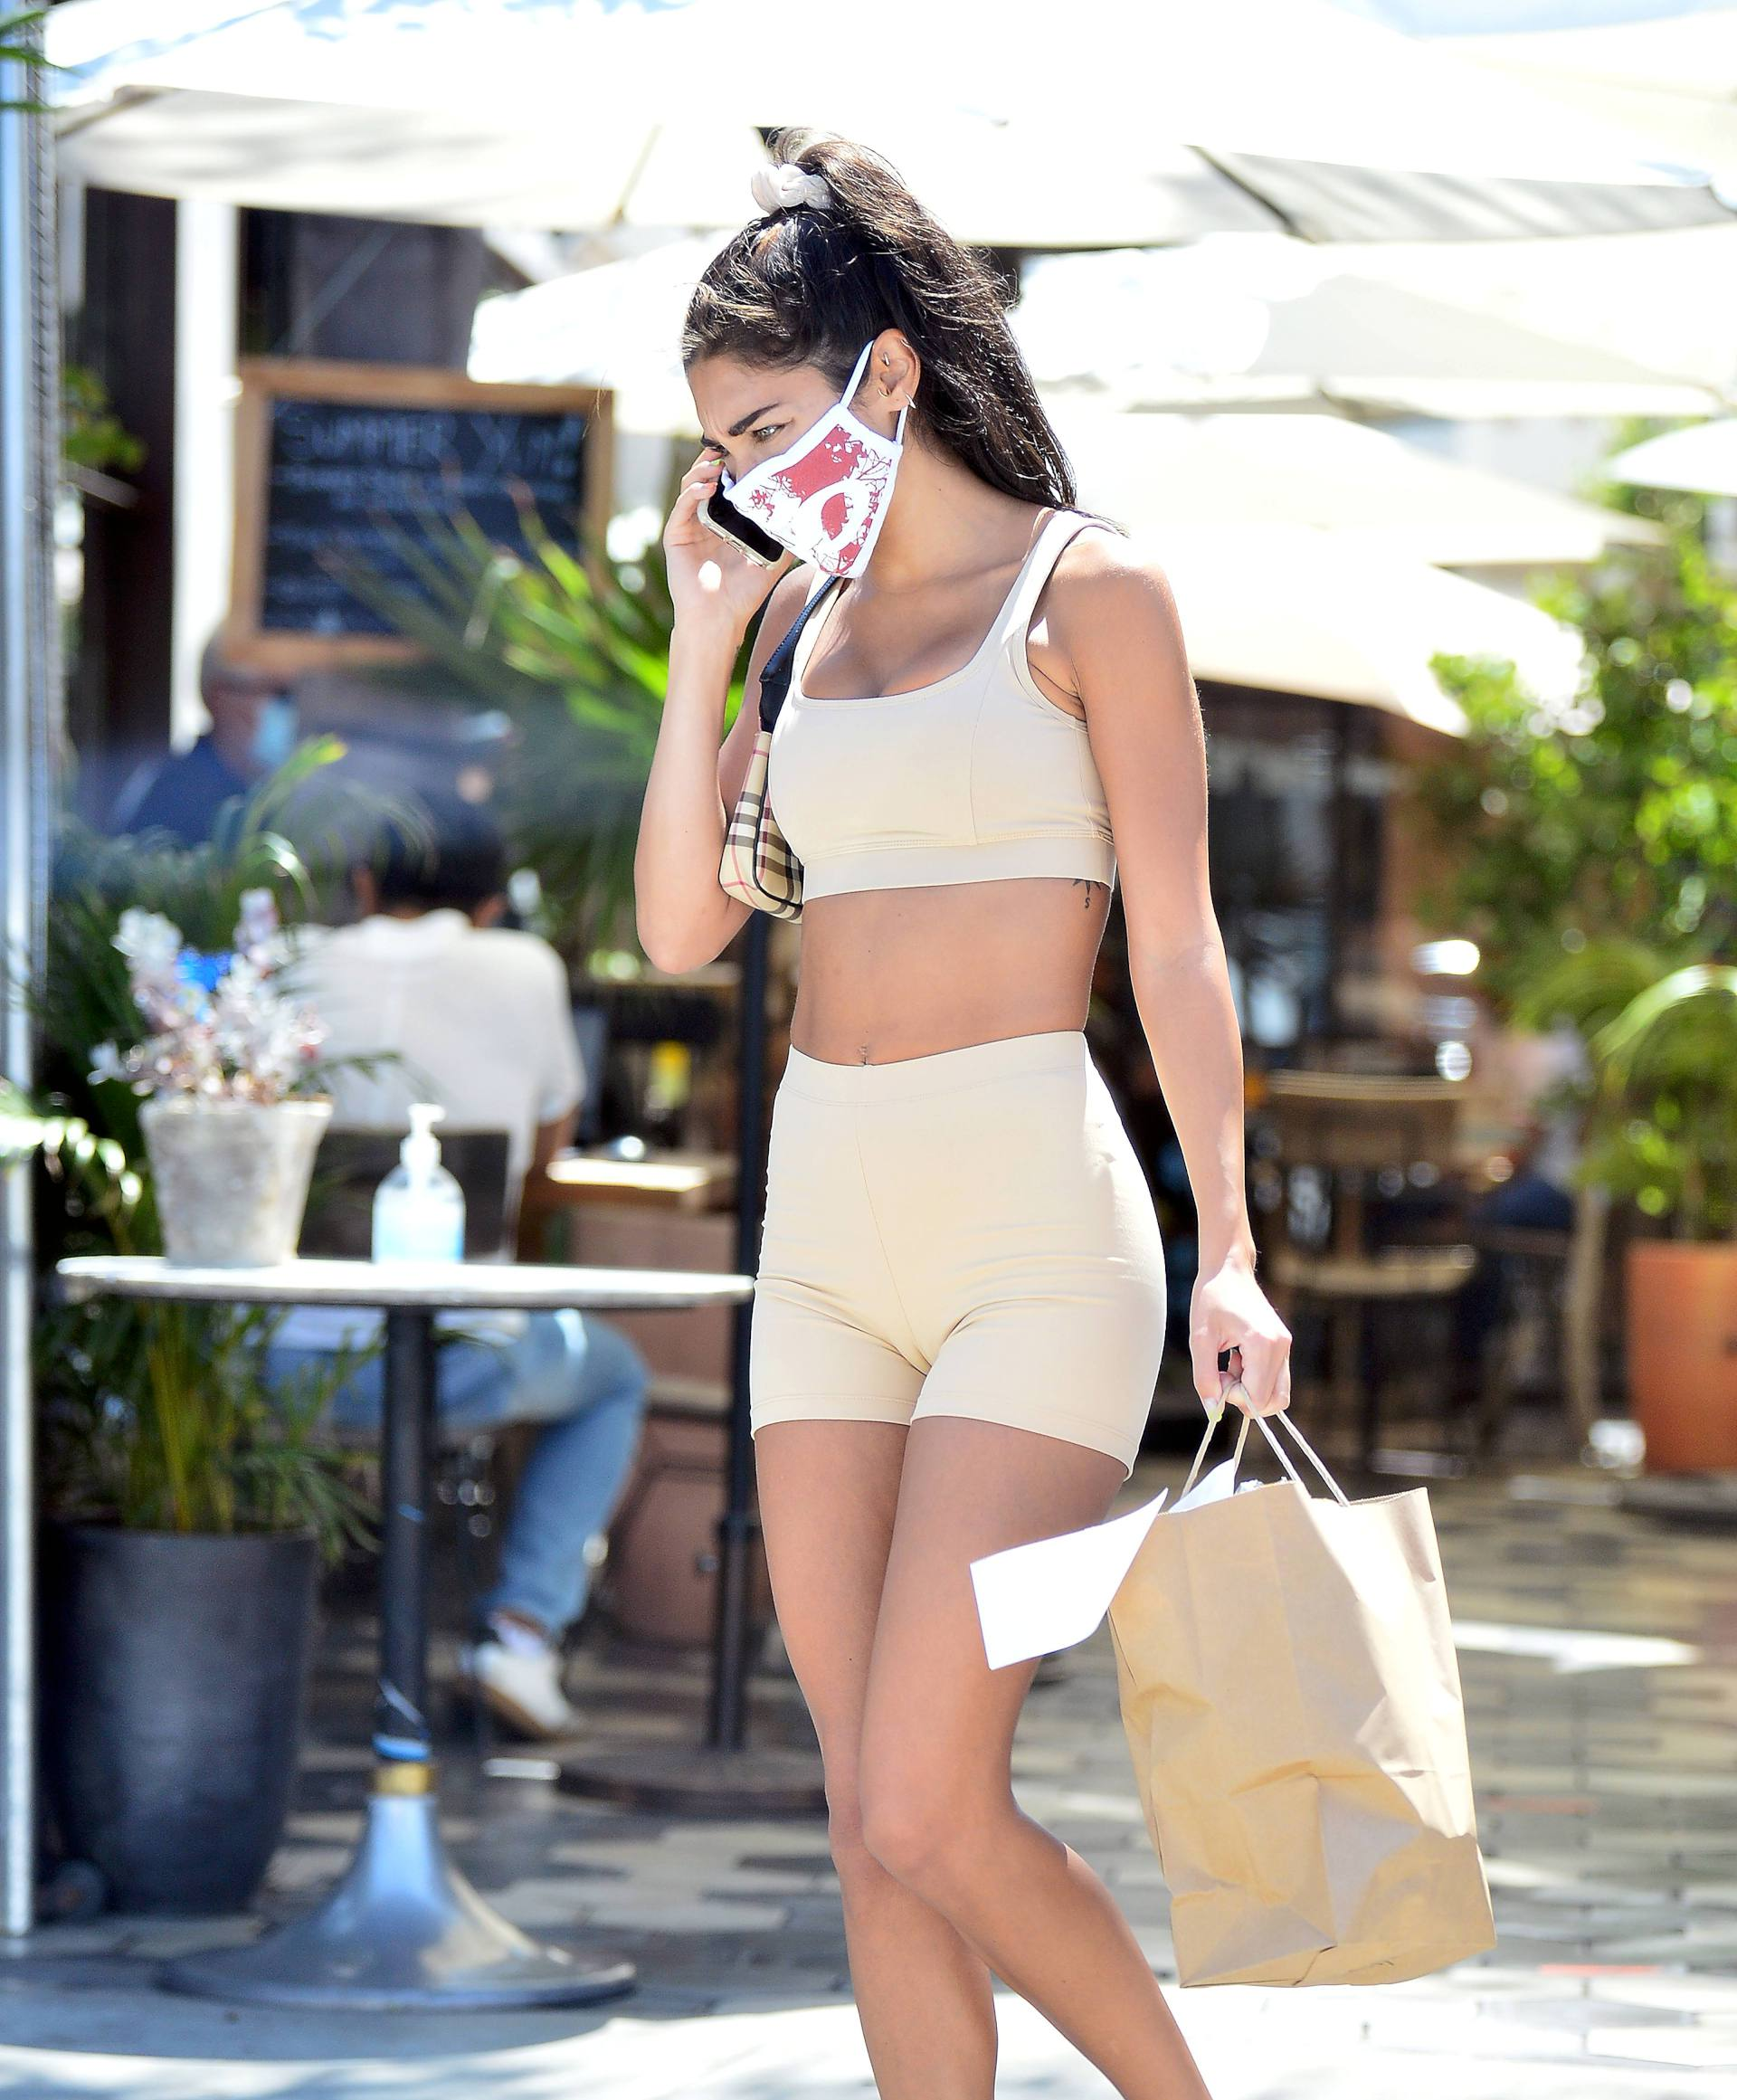 Chantel Jeffries Skimpy Outfit